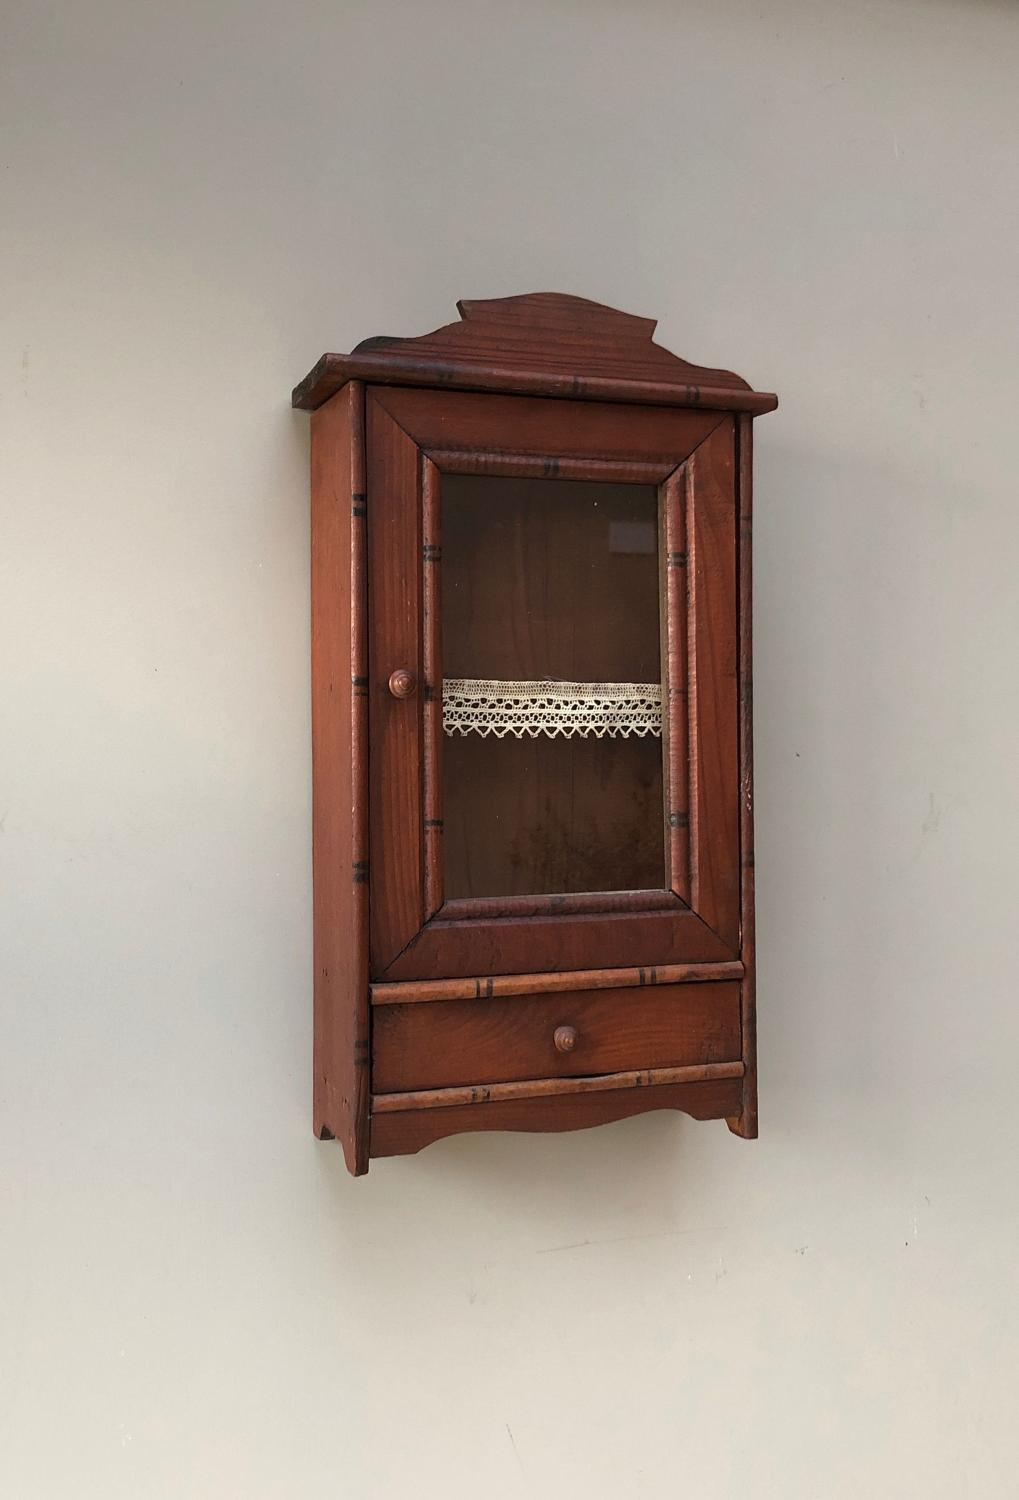 Small Early 20th Century Pine Wall Cupboard - Original Paint